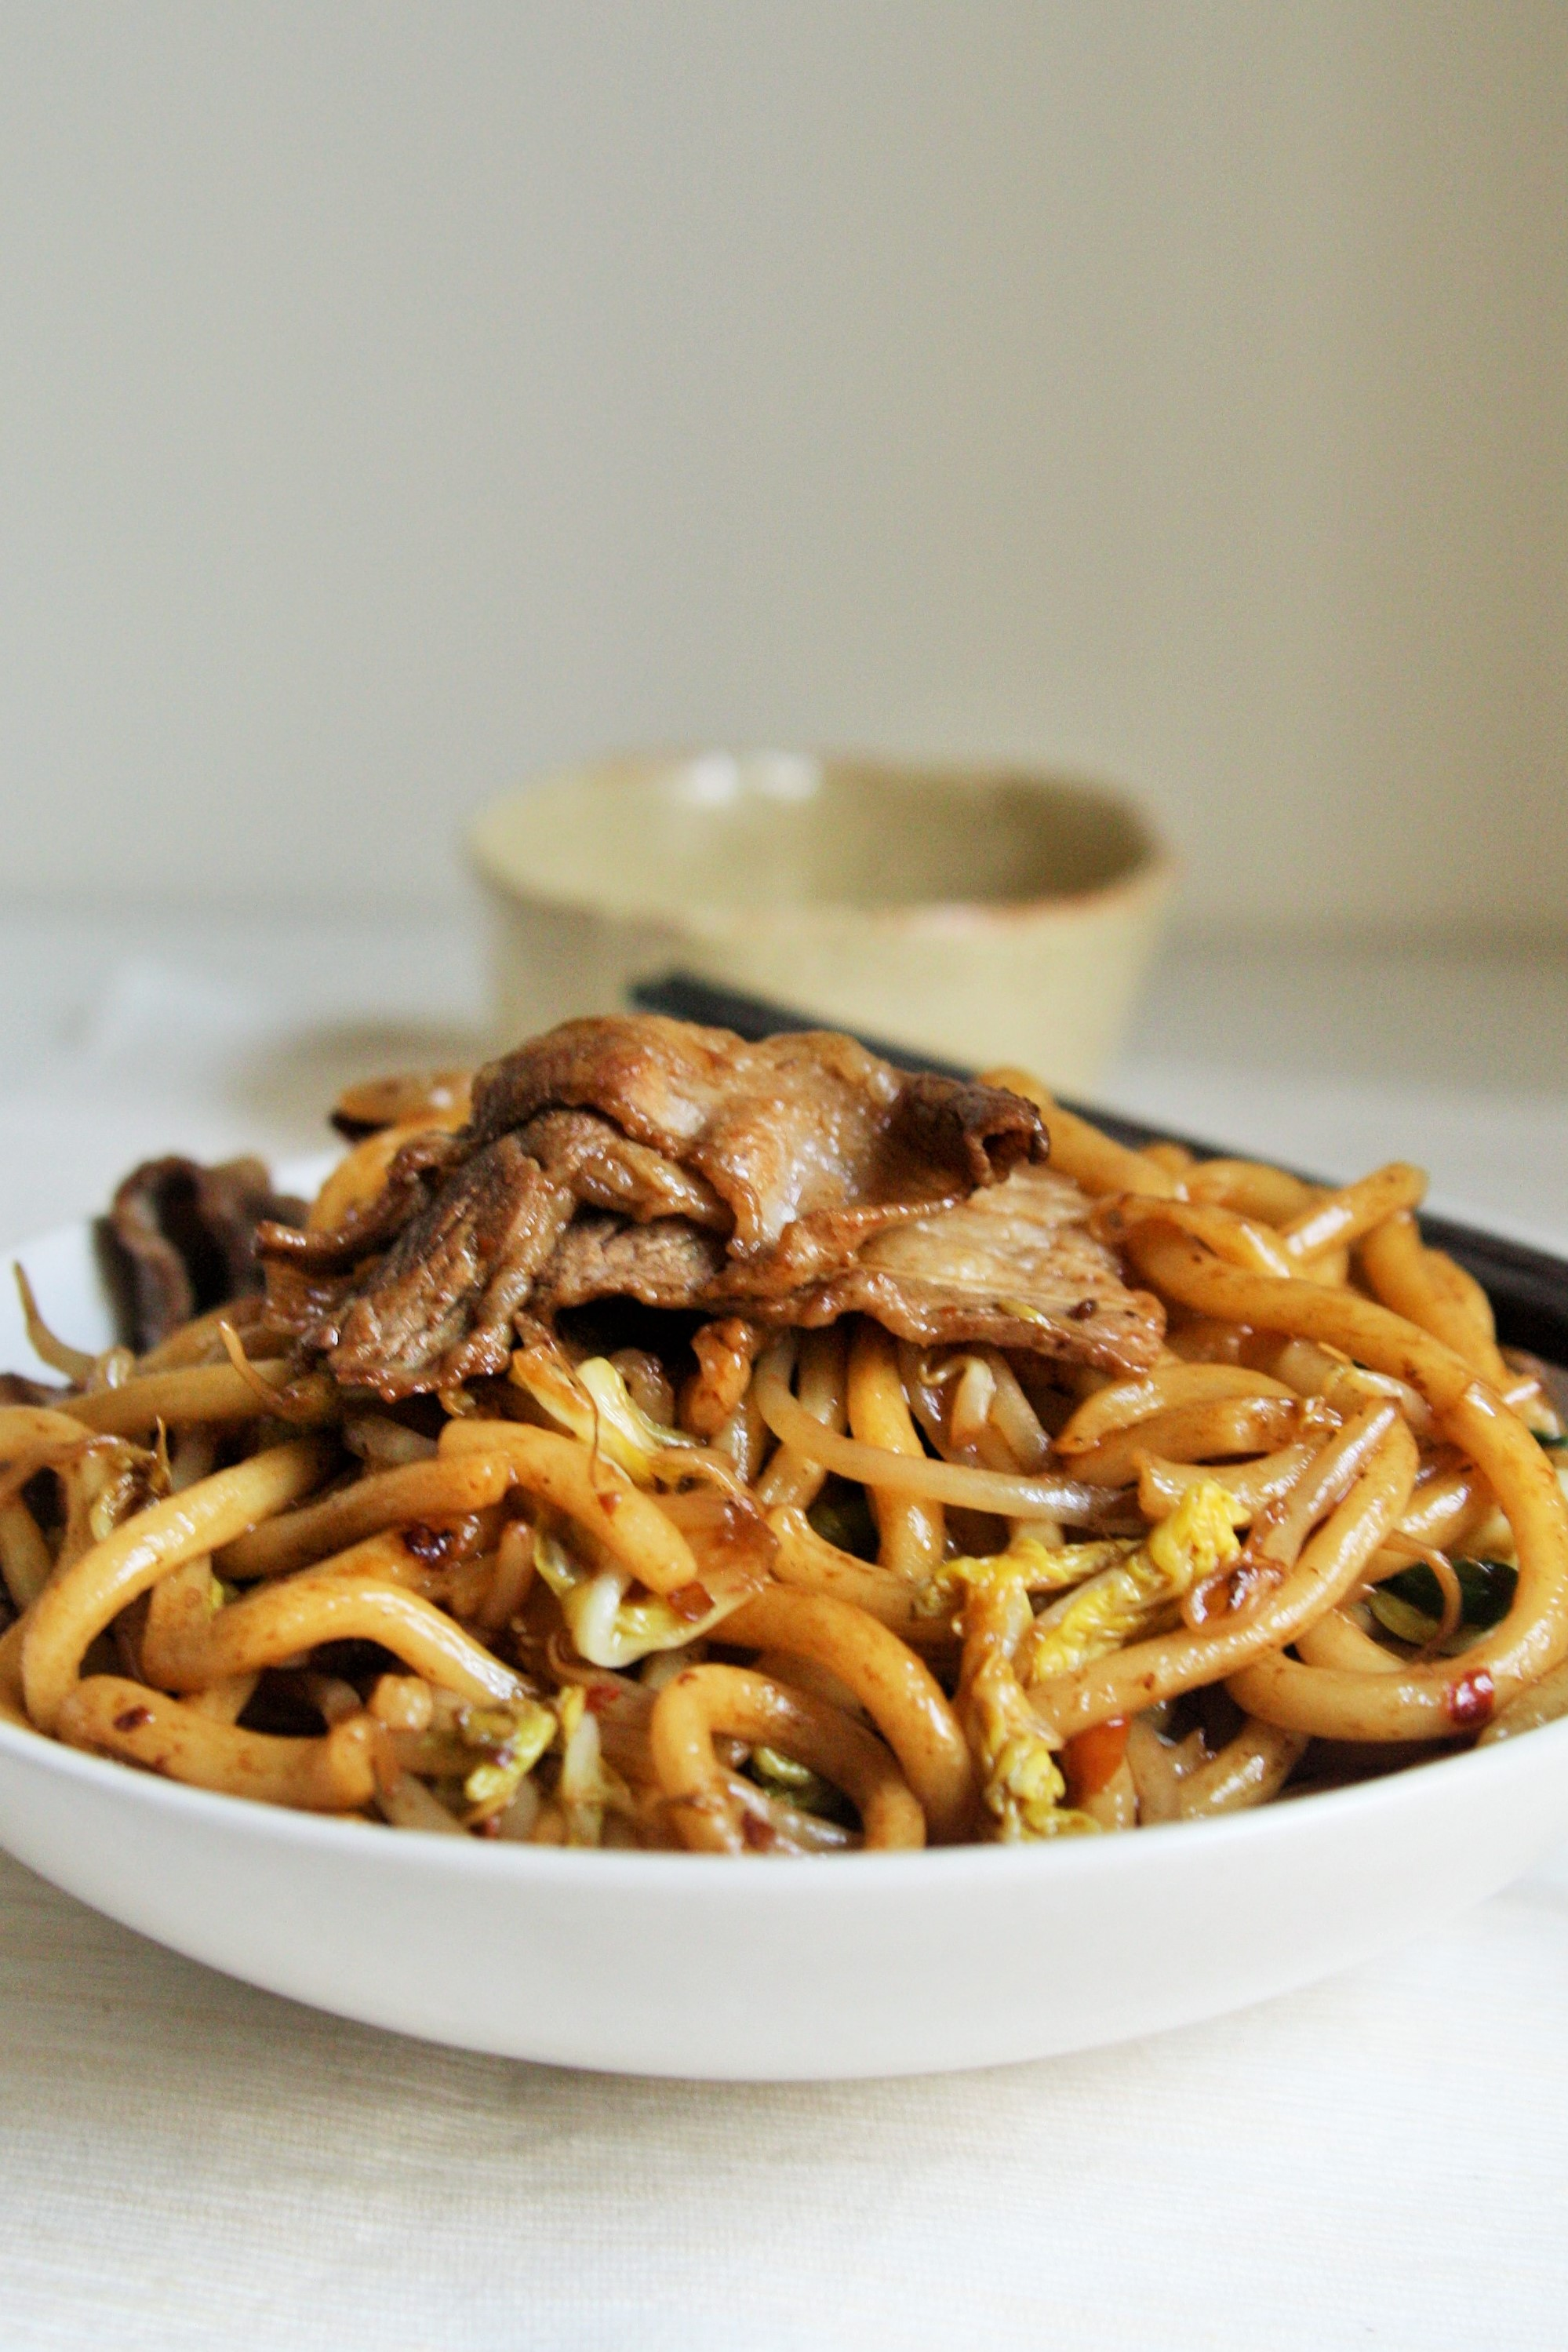 Similar to yakisoba, it\u0027s another type of stir,fry noodle dish made with  thick, chewy wheat noodles. Japanese stir,fry noodles which can be prepared